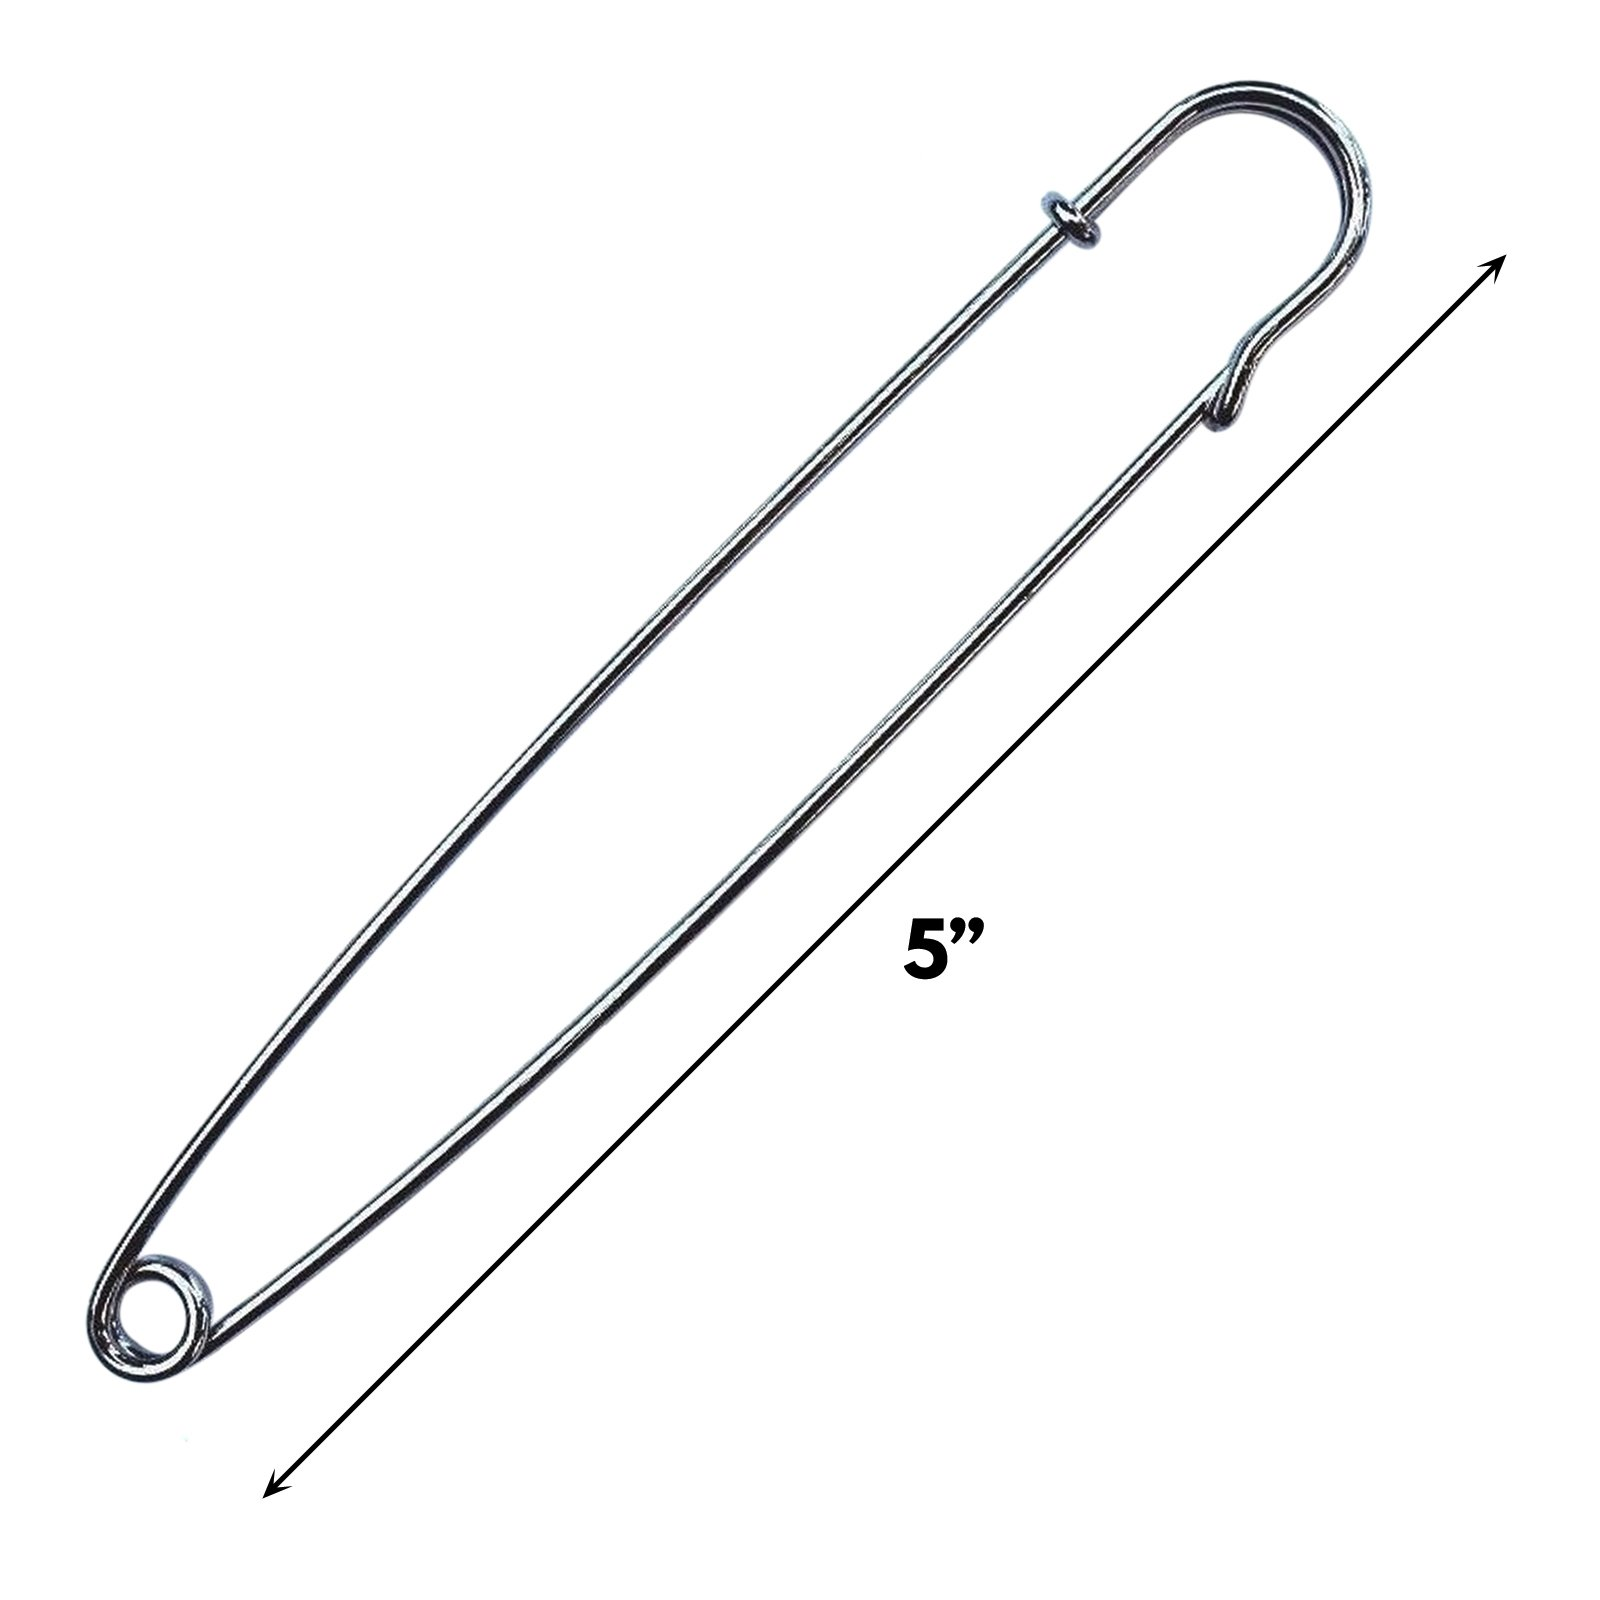 5 Inch Nickel Plated Safety Pin Hobby Tool Sewing DIY Crafts and Repairs - Large